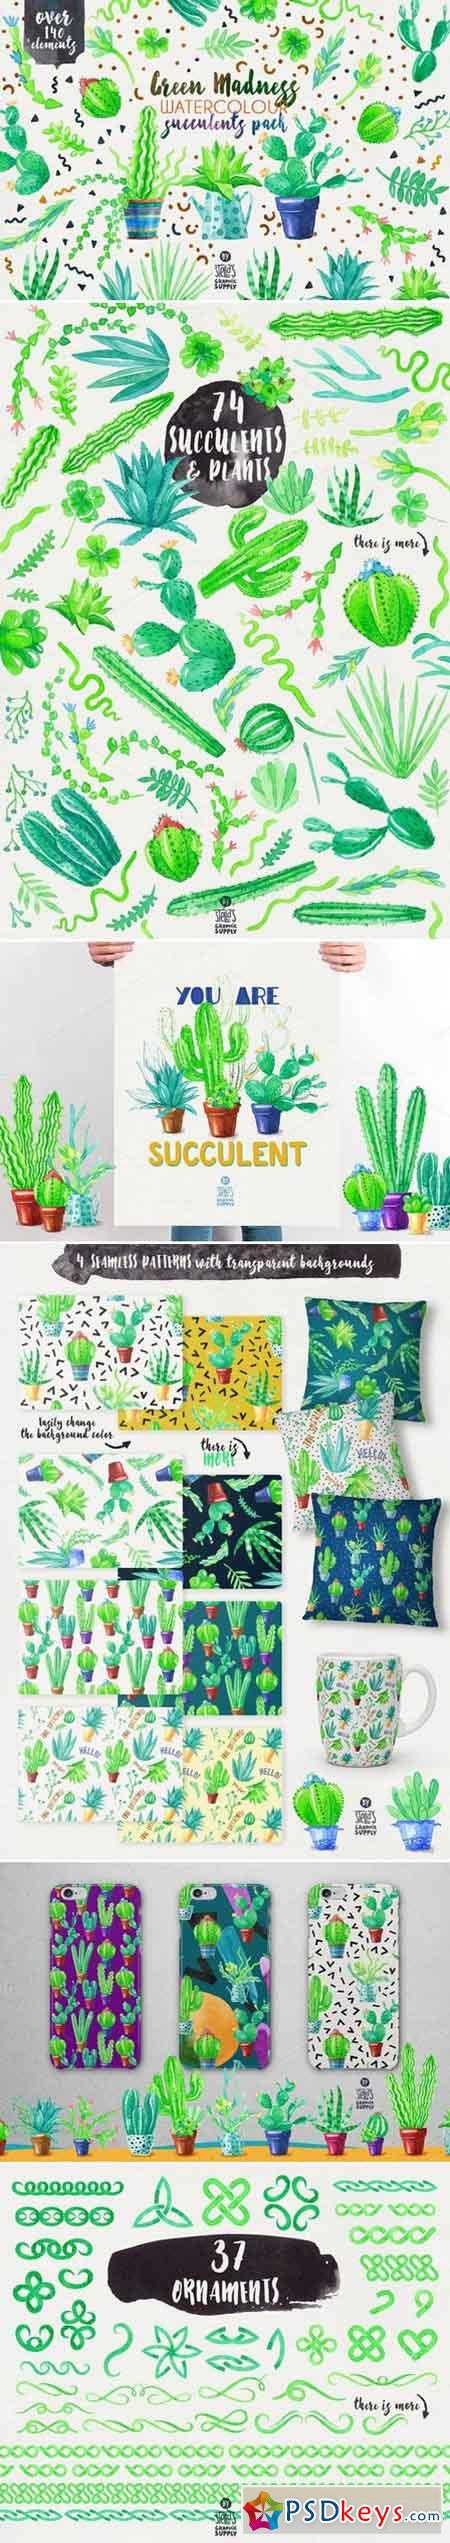 Green Madness-Watercolor Succulents 758298